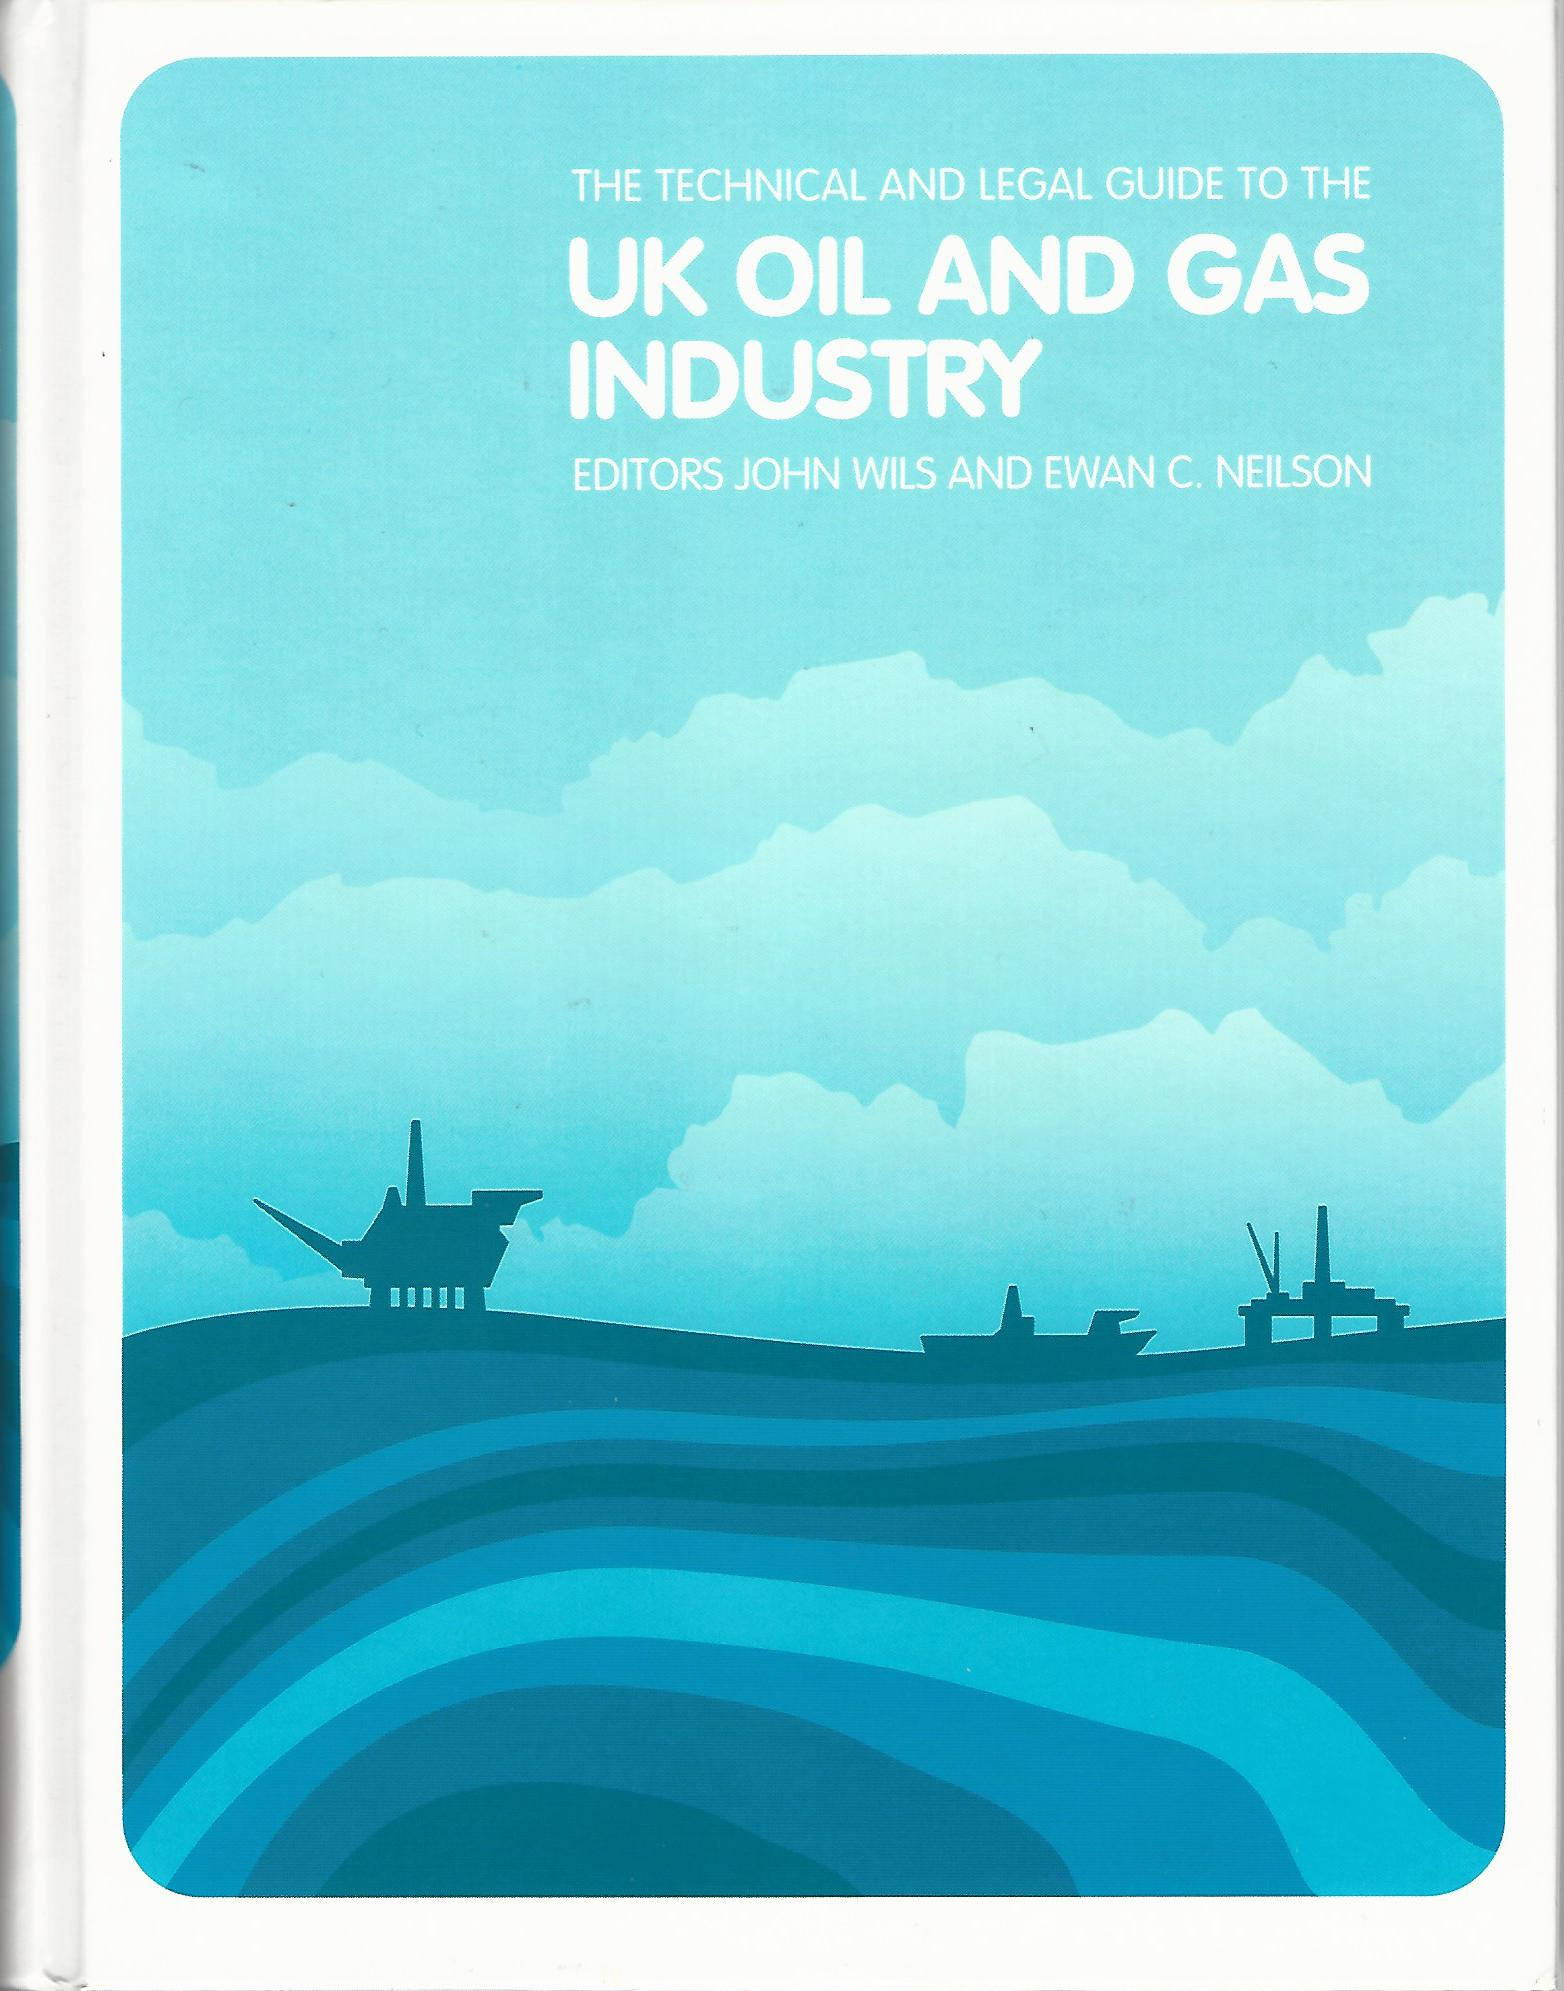 The Technical and Legal Guide to the UK Oil and Gas Industry